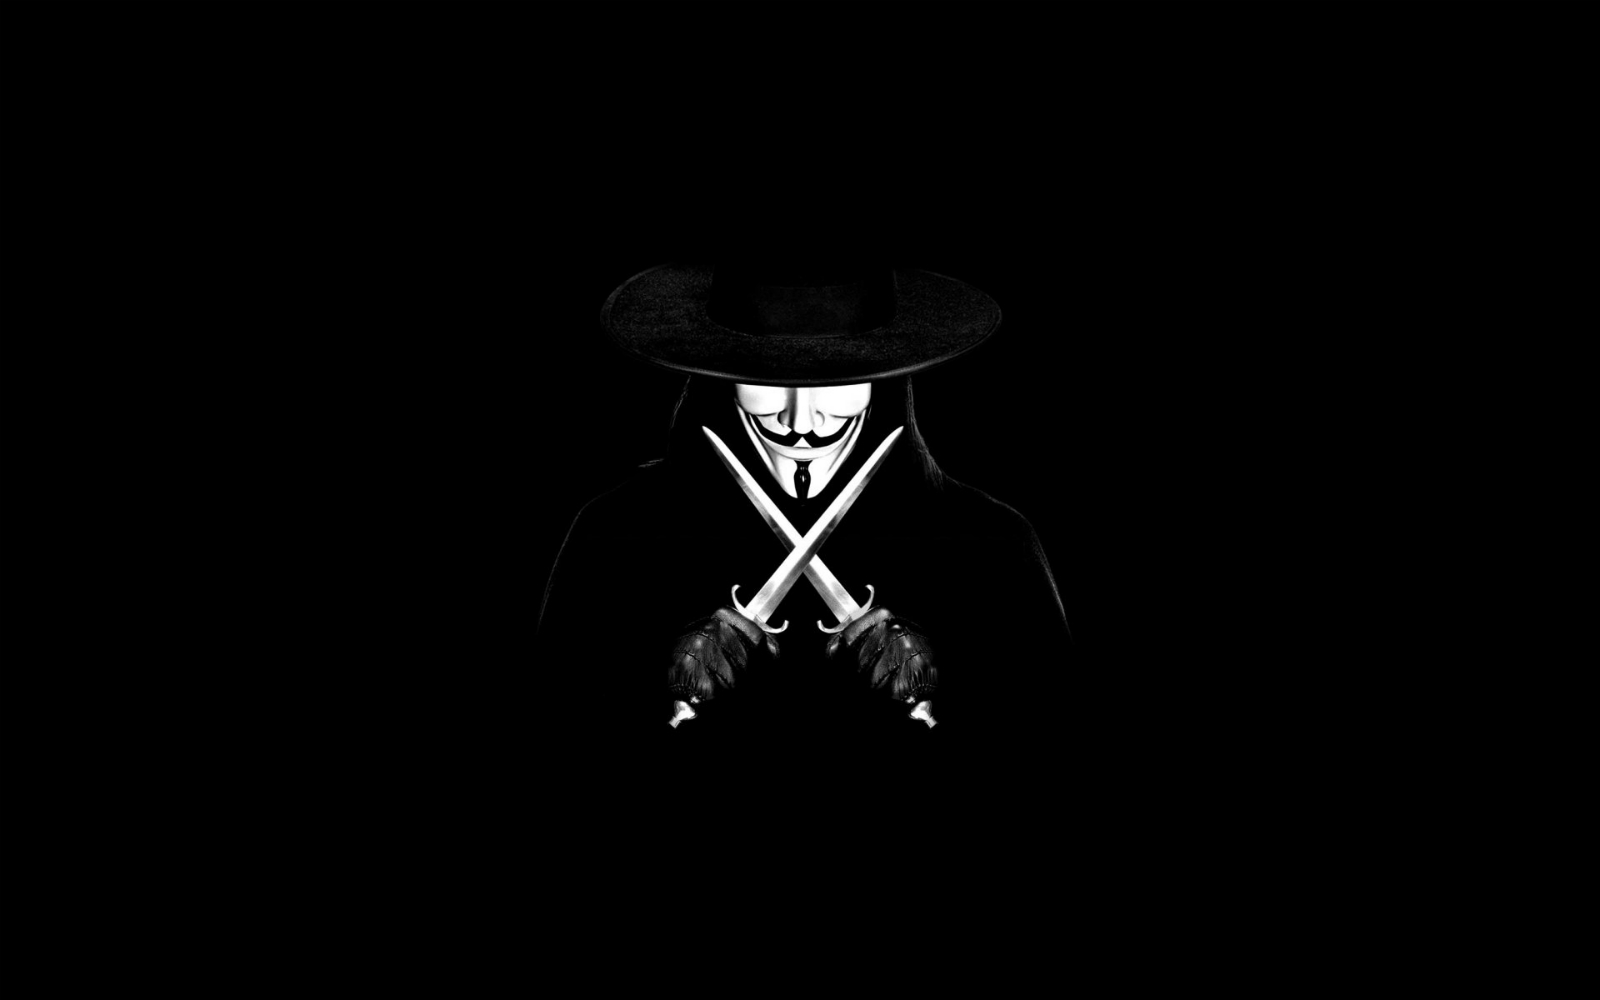 http://4.bp.blogspot.com/-rMKK4A1AA-E/TlrL1NCnAjI/AAAAAAAAAuY/GopkVJla8Nw/s1600/guy_fawkes_v_for_vendetta_kingdoom_frover_balck_and_white_wallpaper_www.Vvallpaper.net.jpg